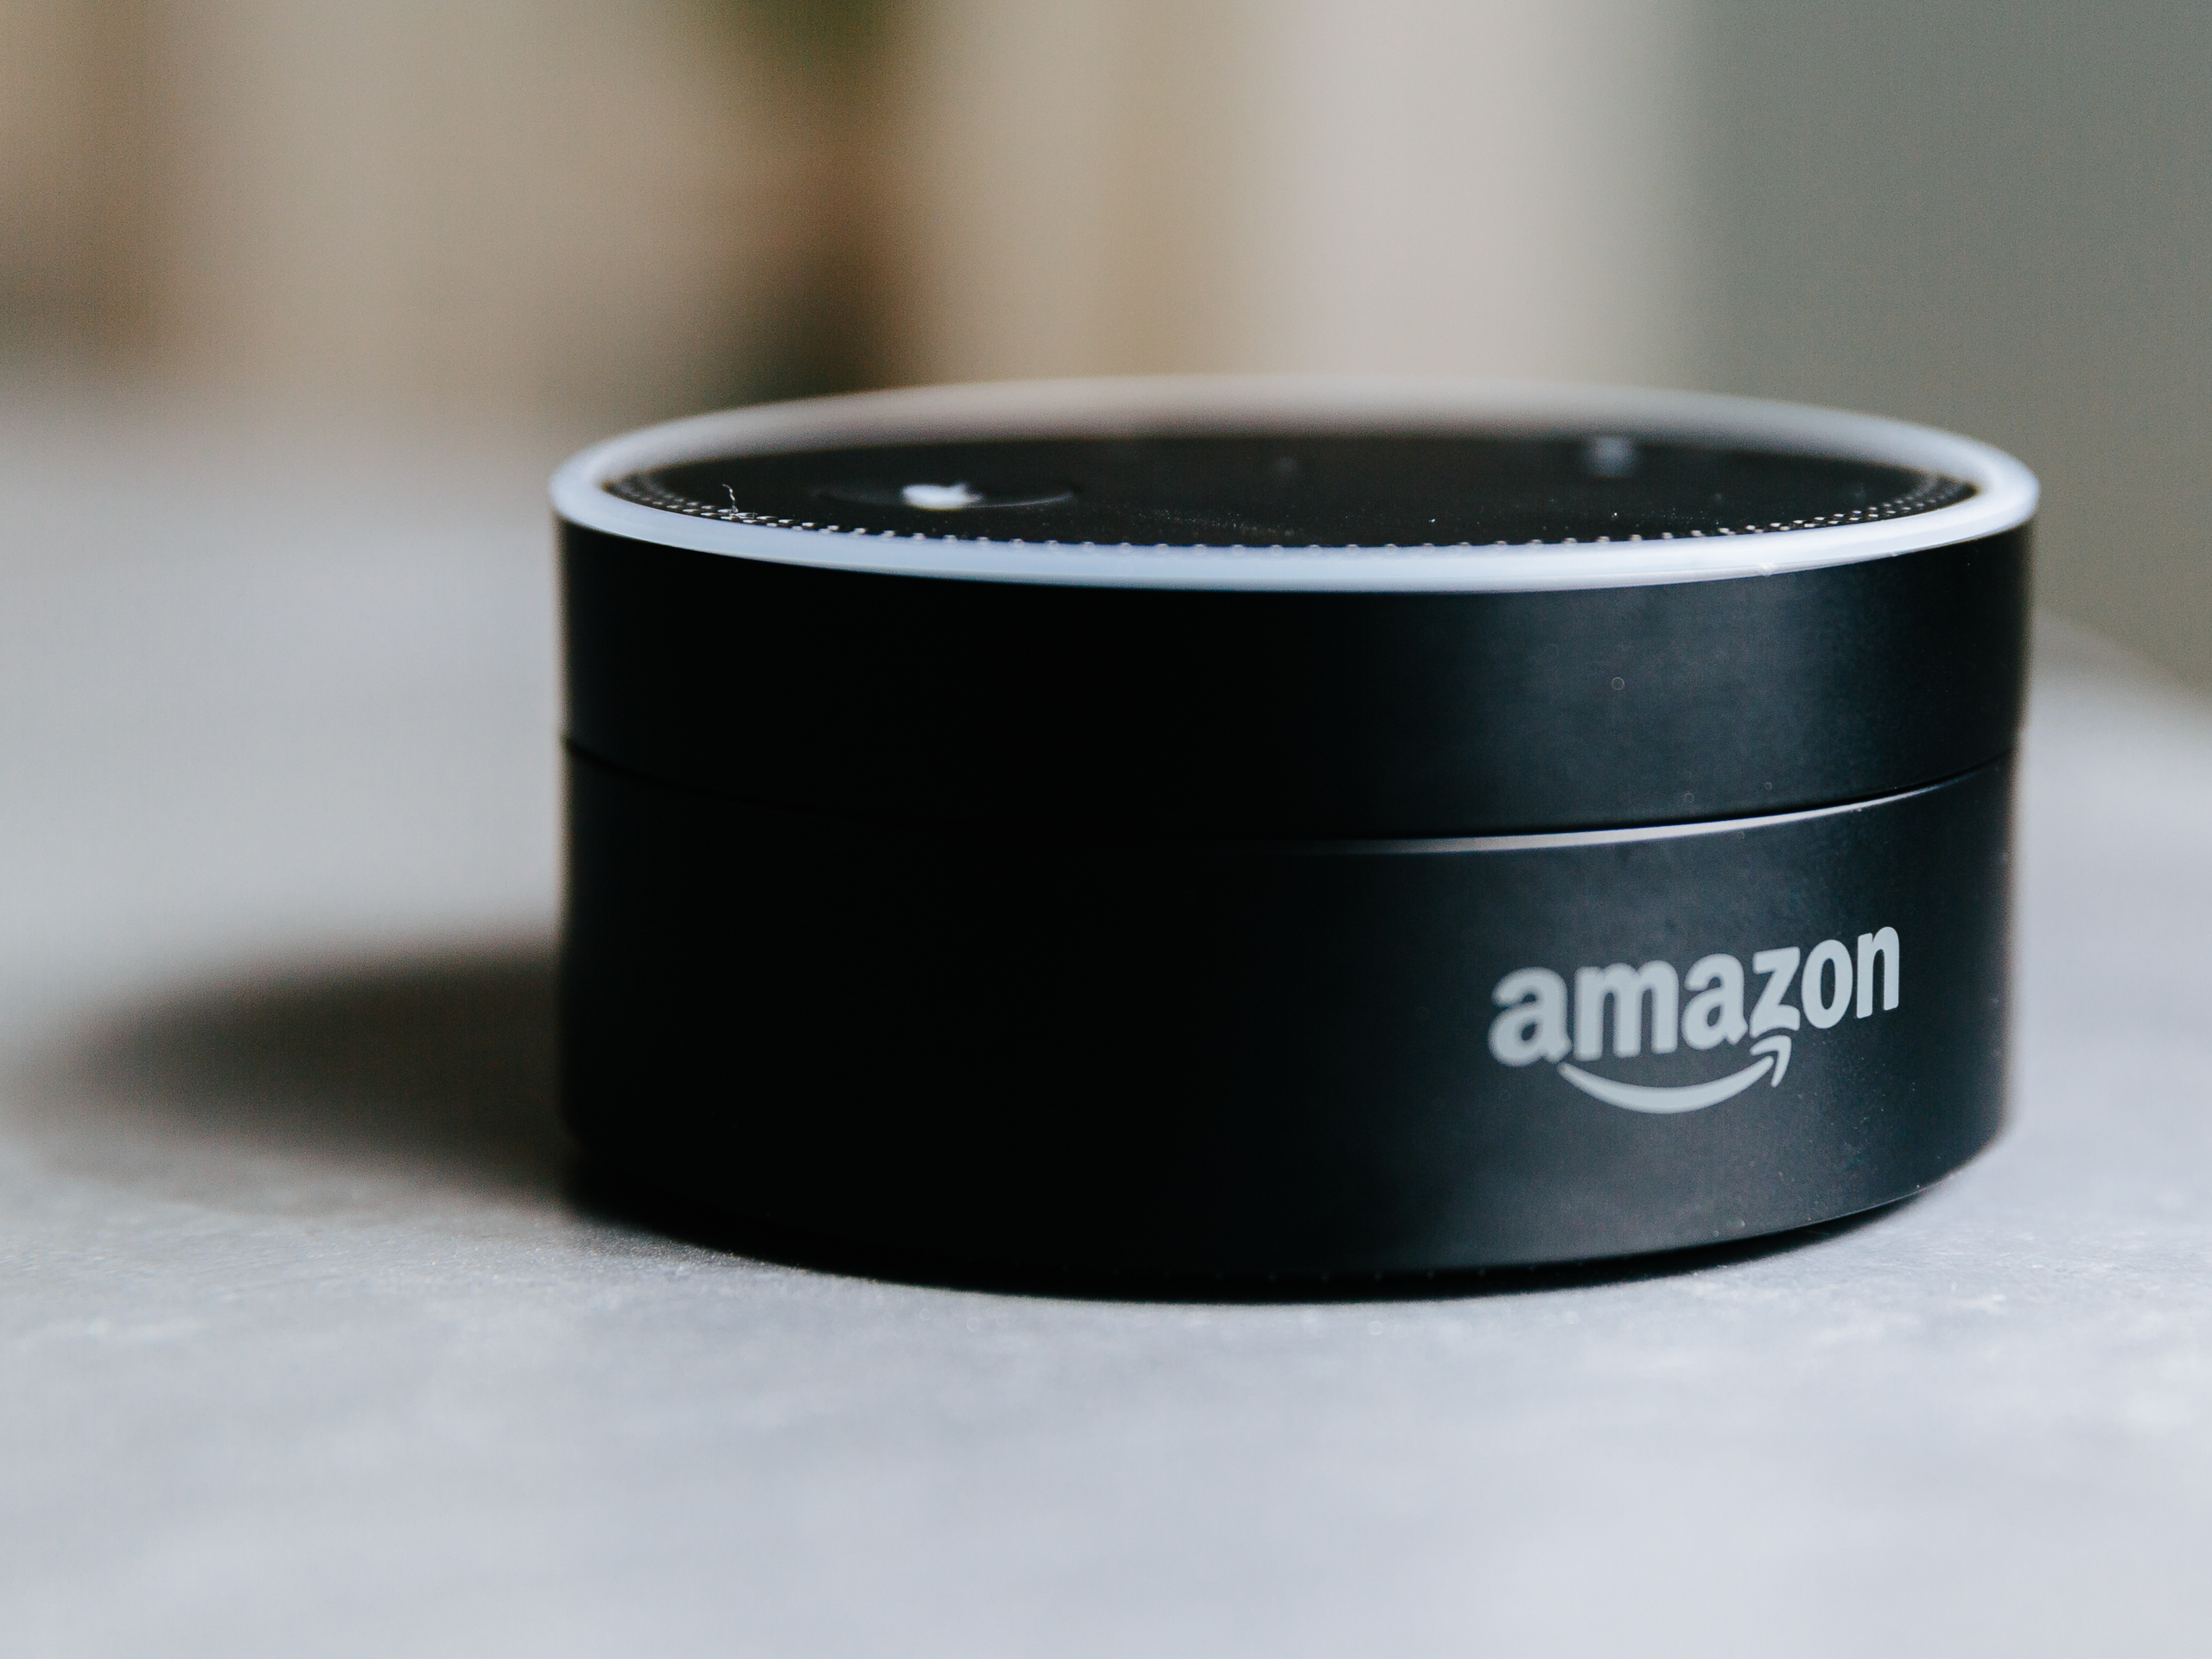 Turn your Amazon Echo Dot into the ultimate nightstand accessory